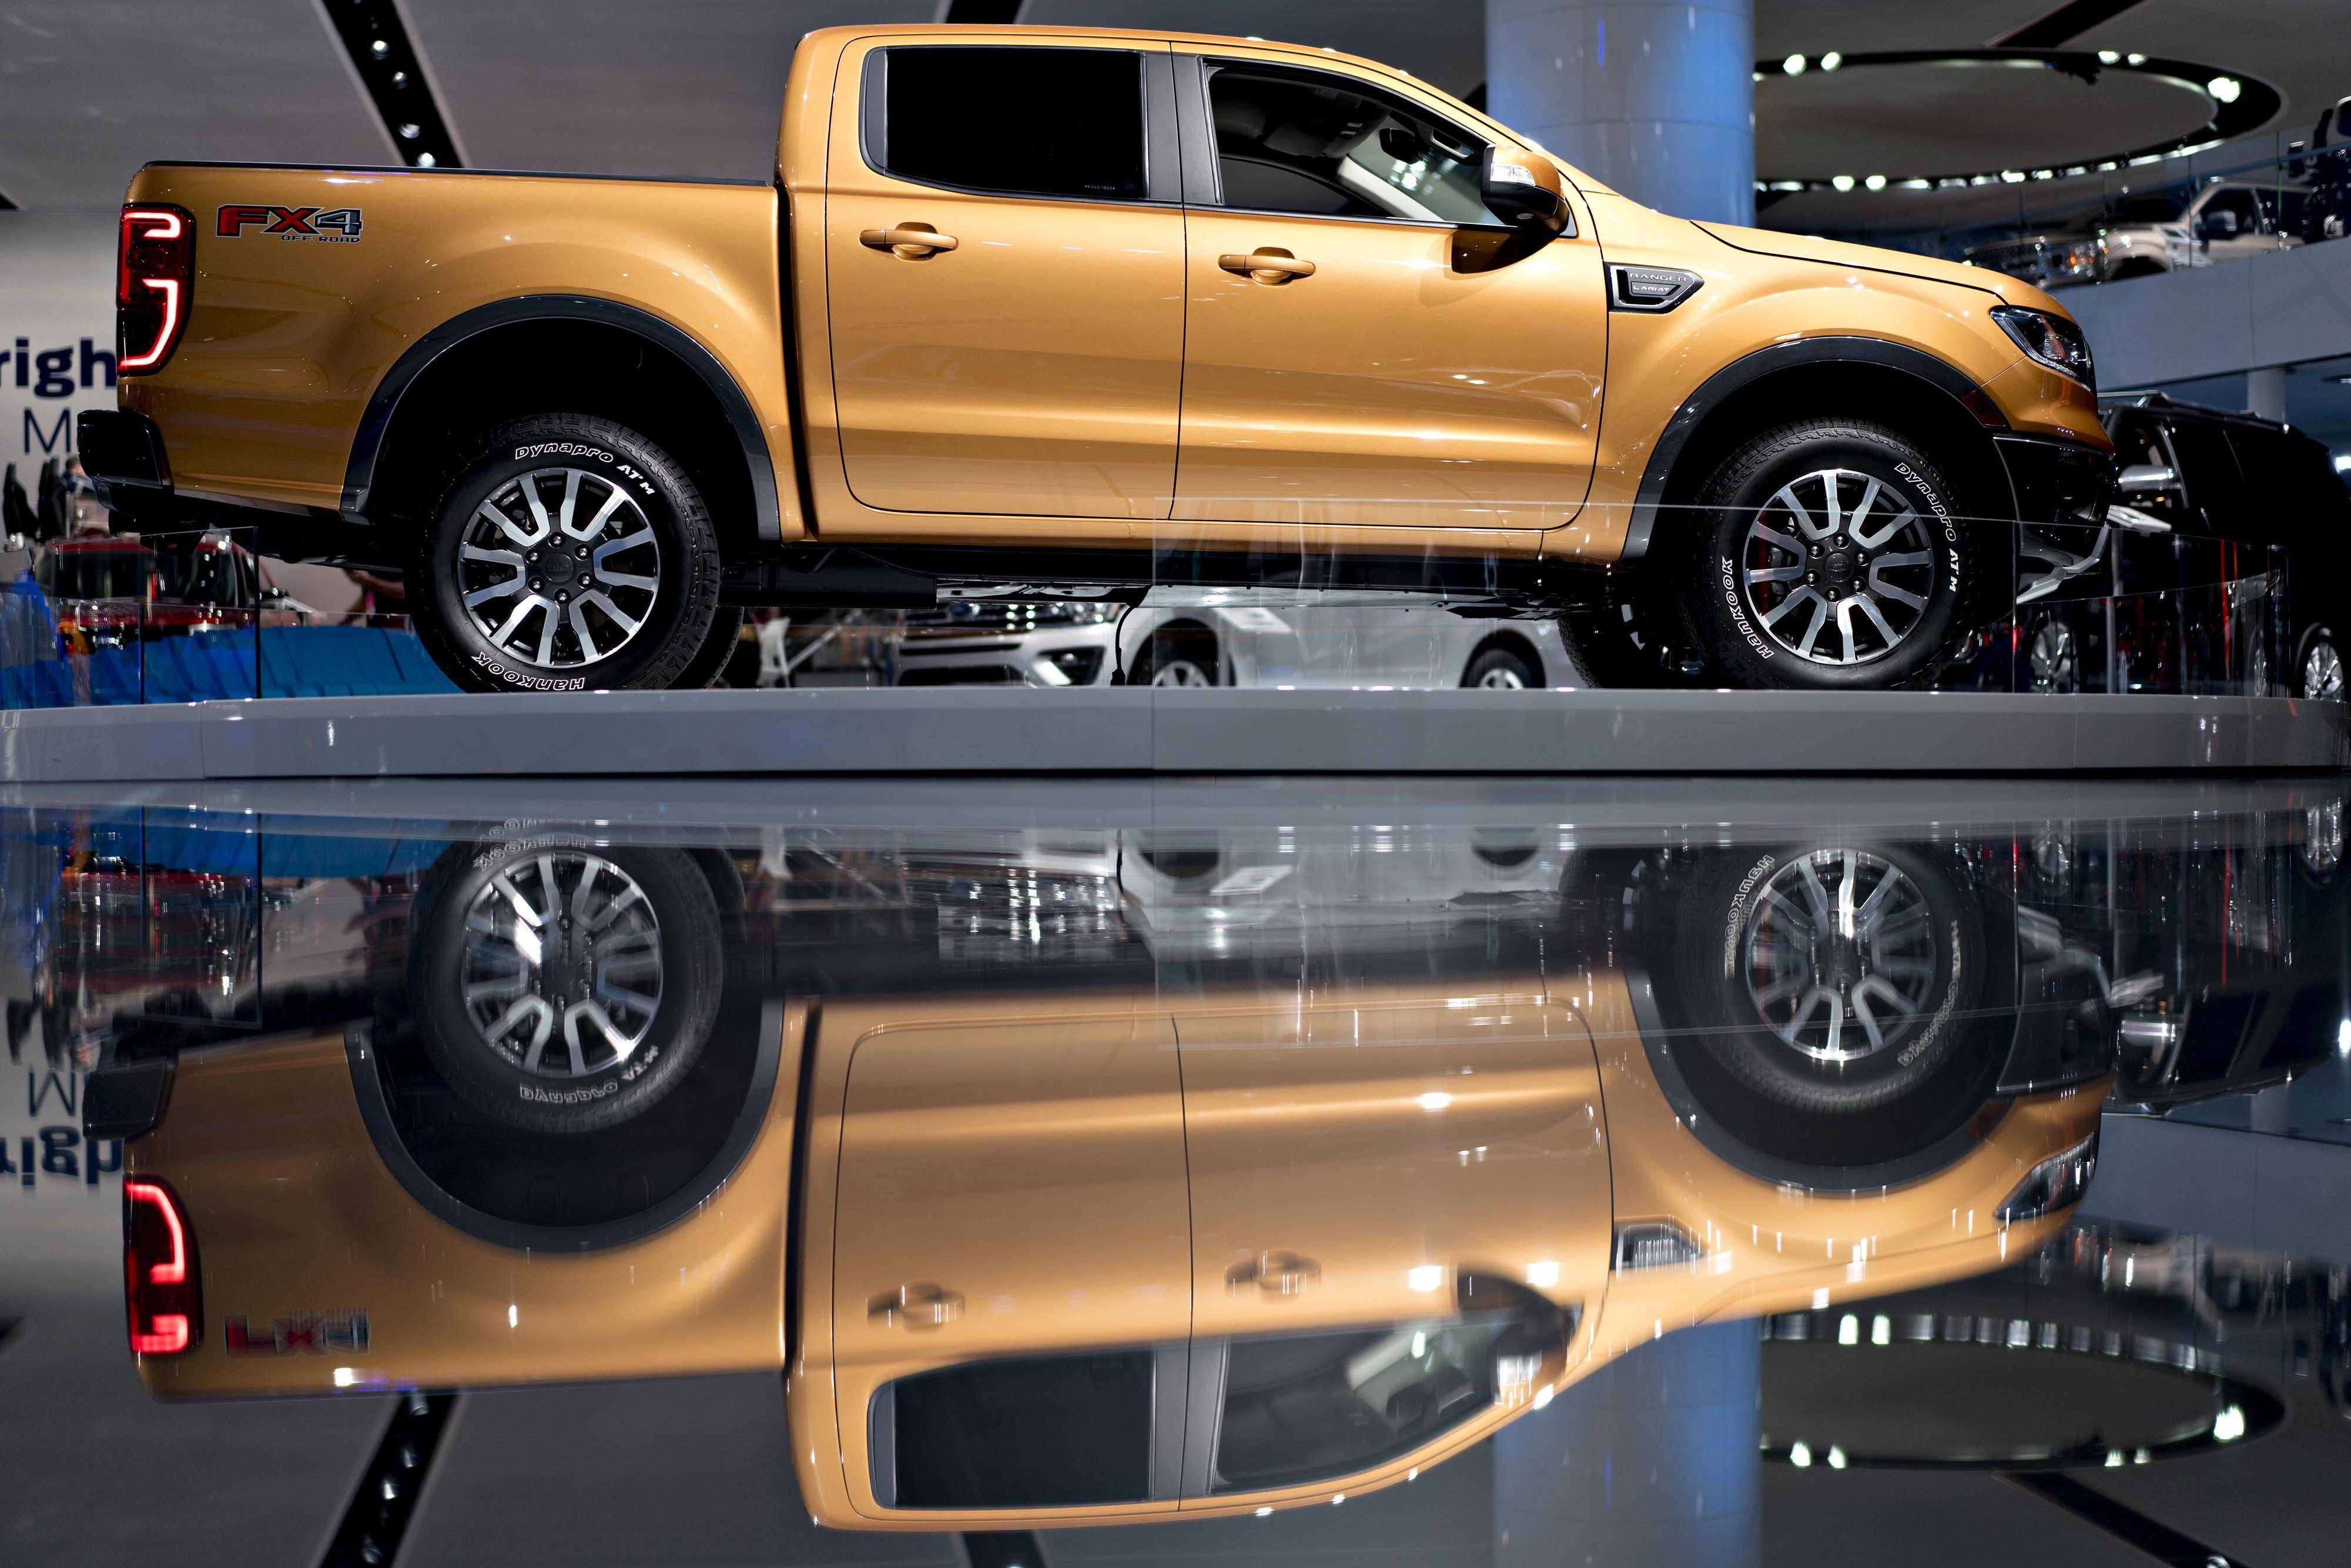 Ford's showing a revamped 2019 Ranger mid-size pickup truck at the Chicago Auto Show.